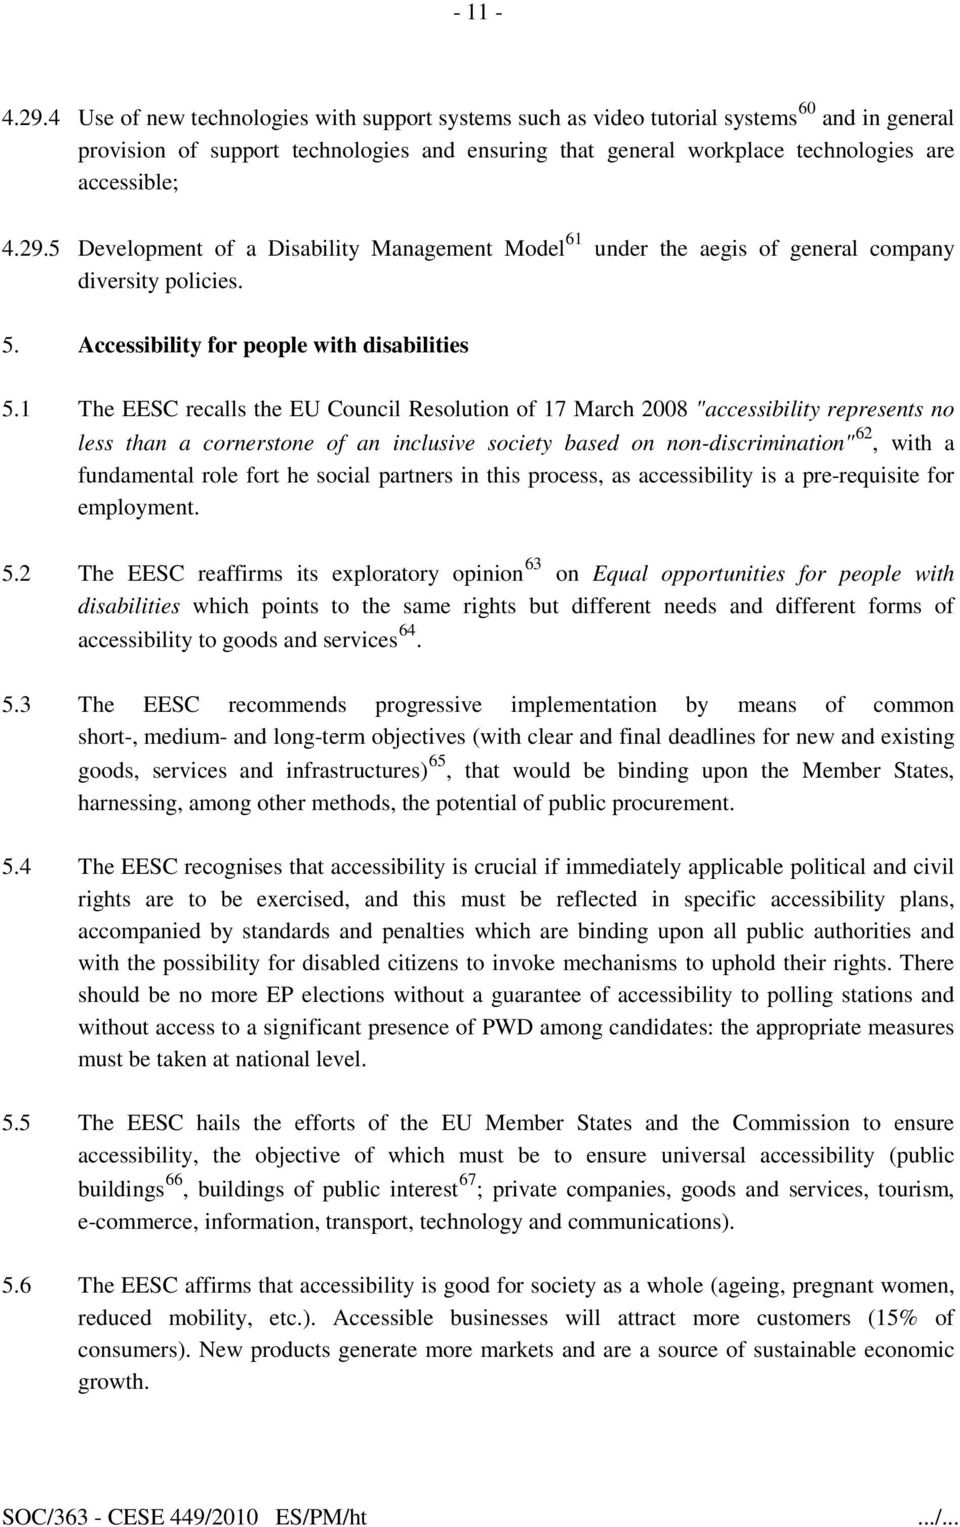 5 Development of a Disability Management Model 61 under the aegis of general company diversity policies. 5. Accessibility for people with disabilities 5.